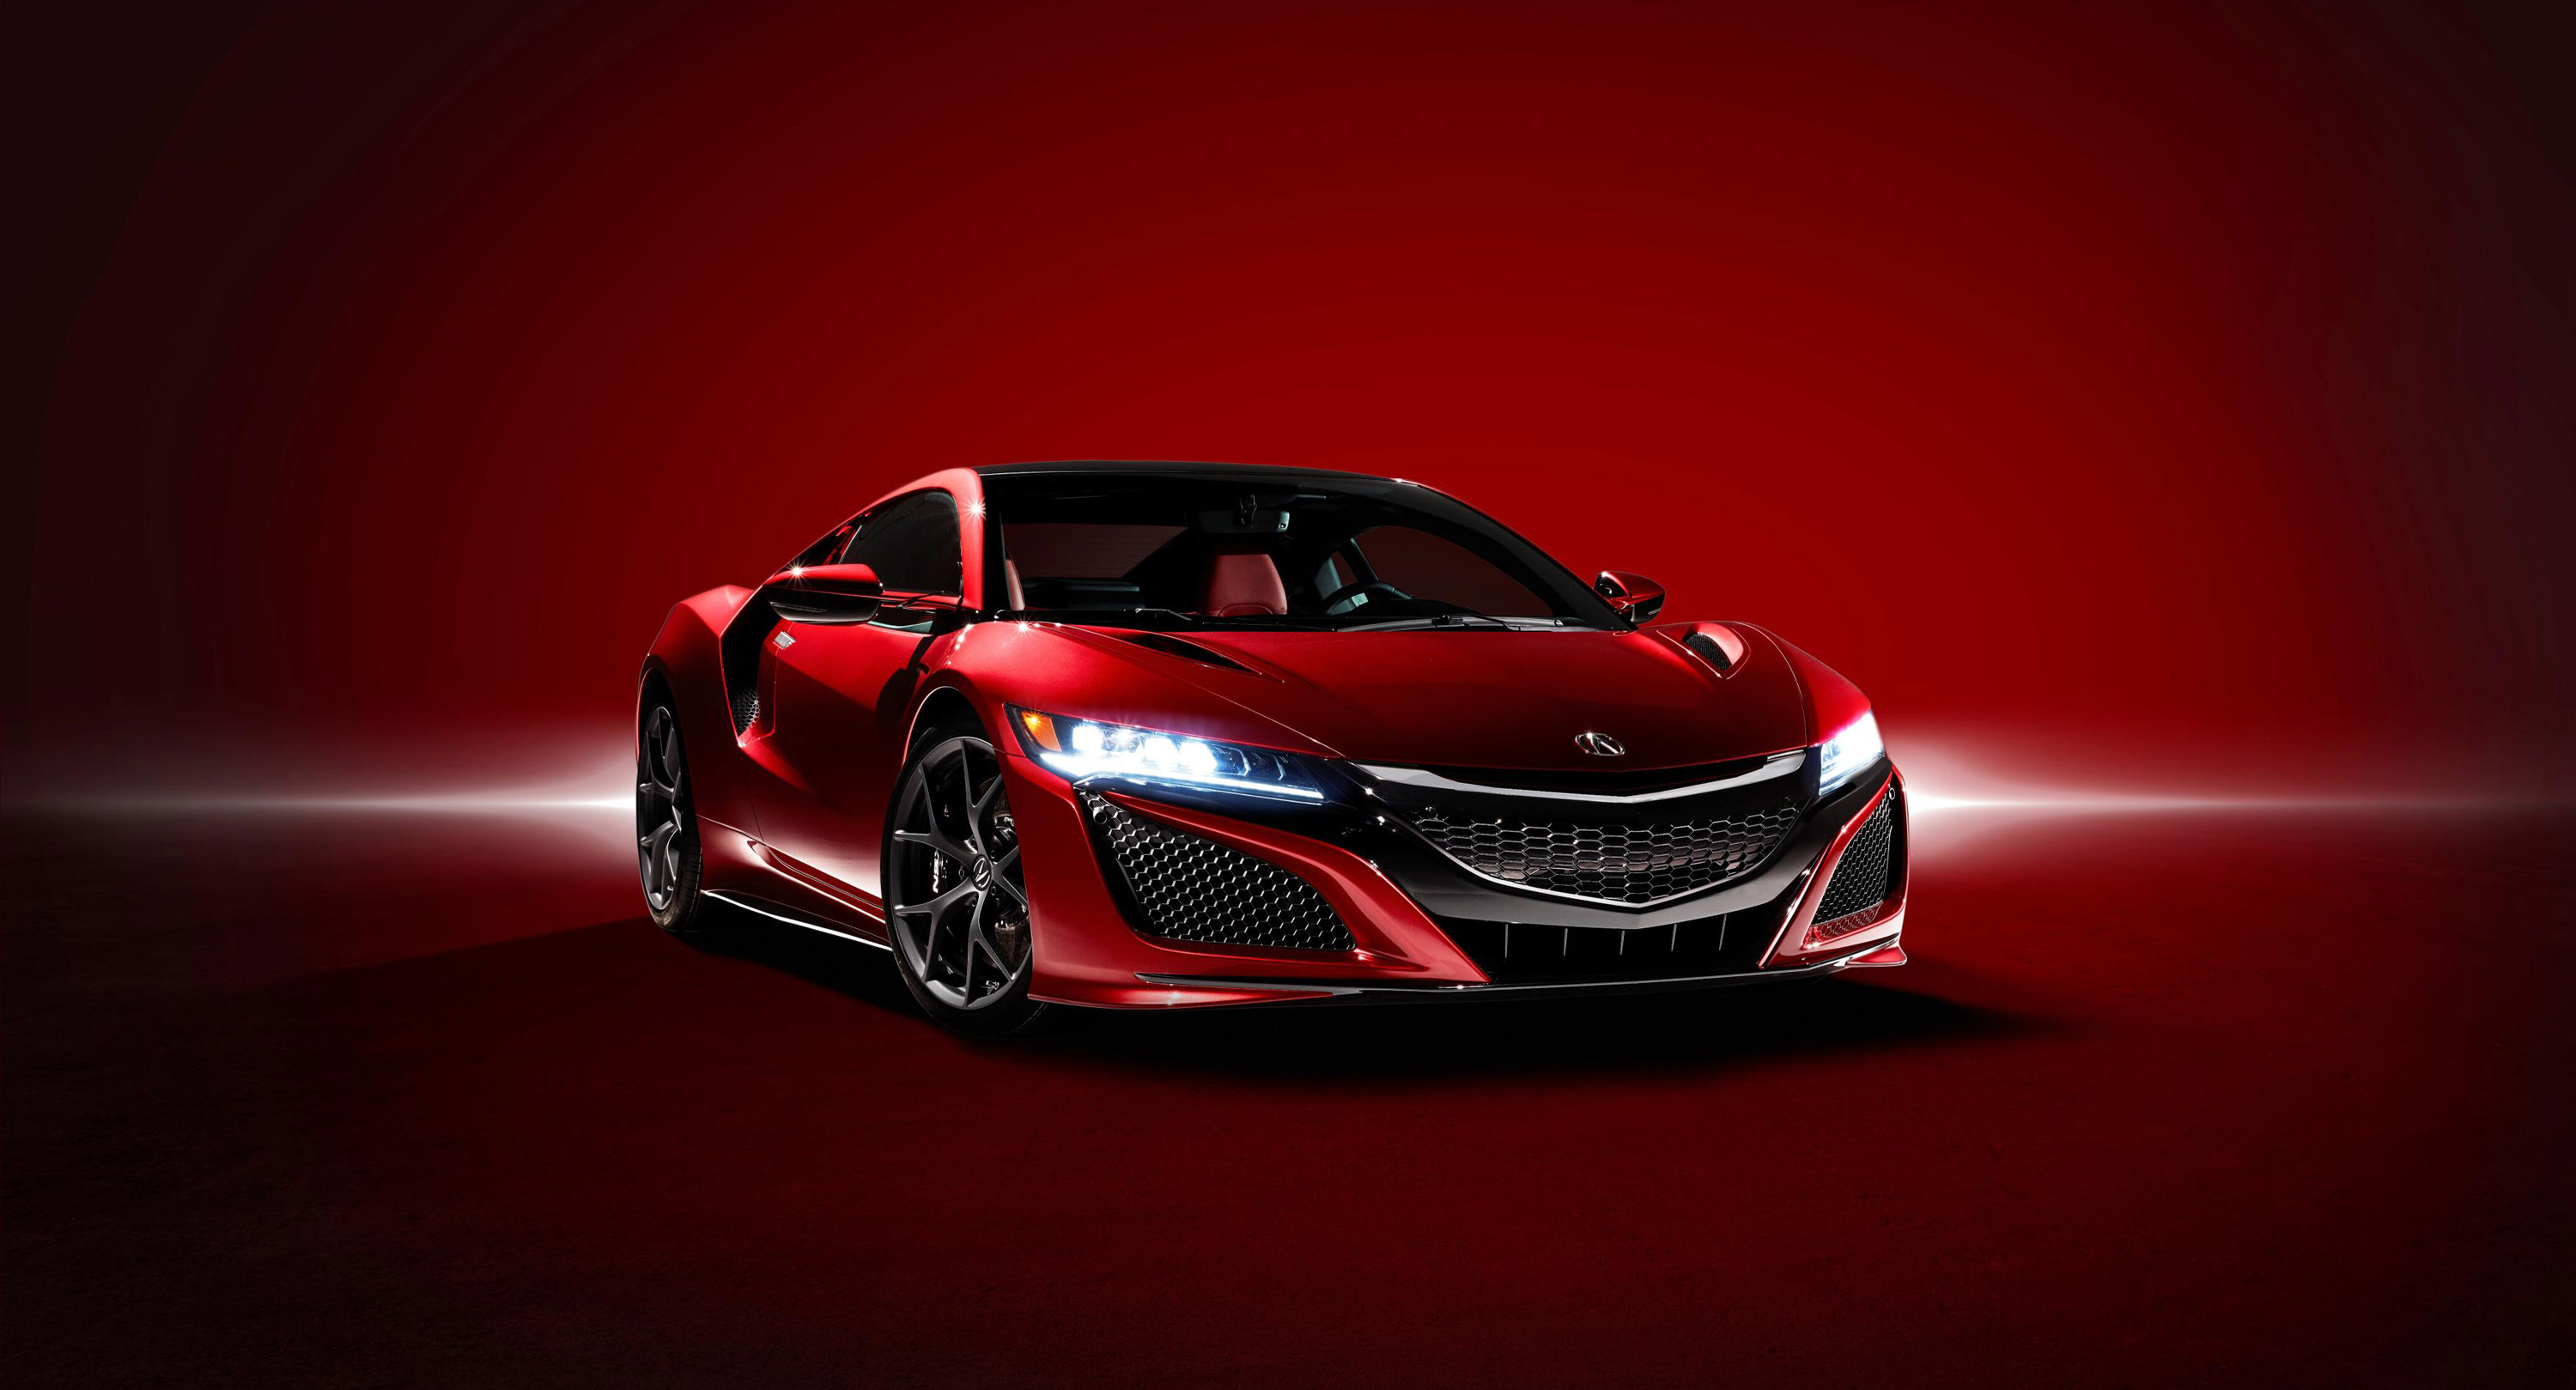 2016 Acura NSX sold for a record price